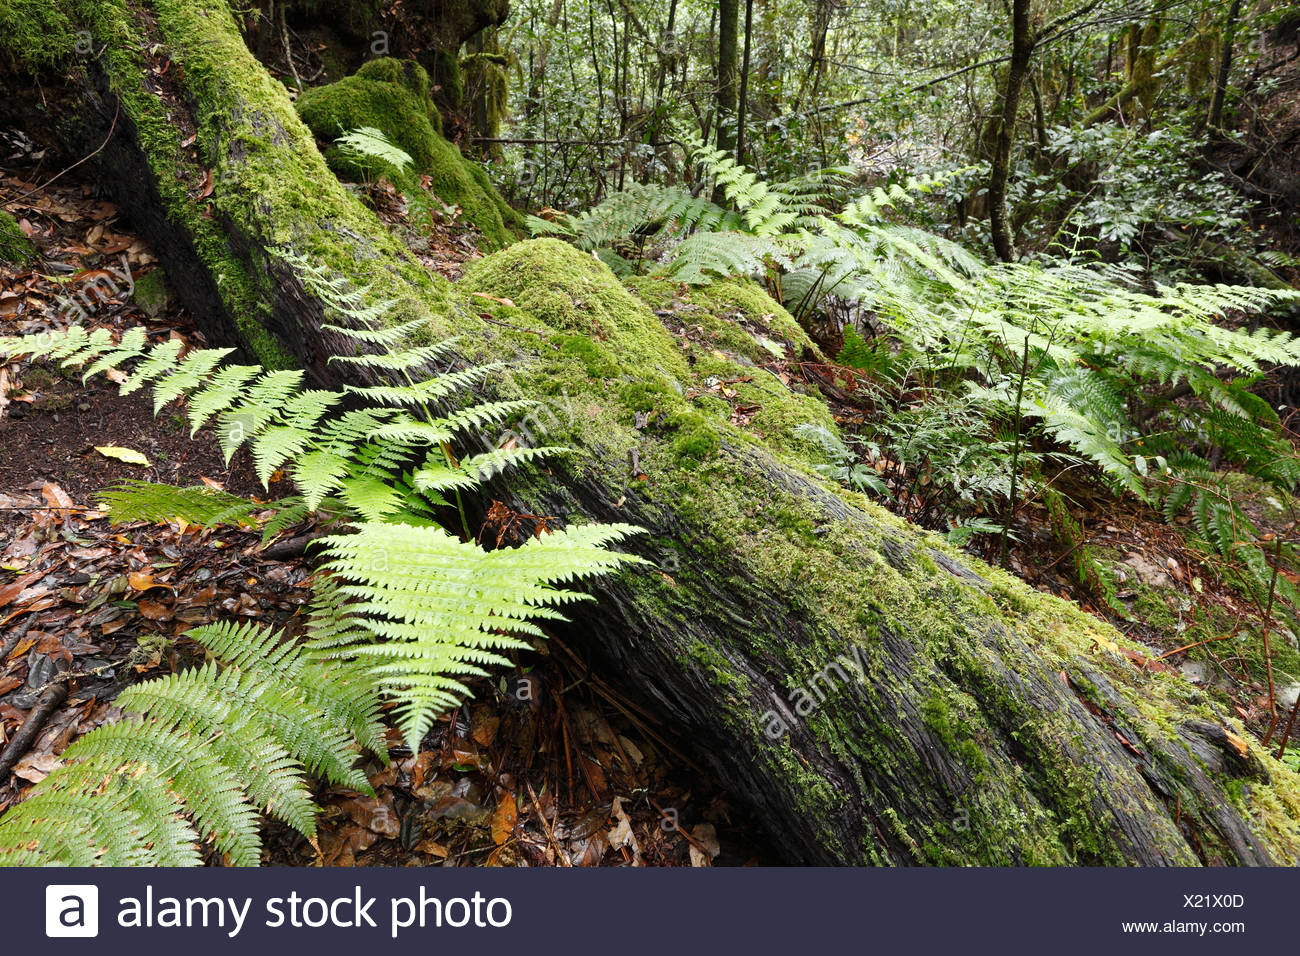 Ferns and moss-covered tree in a laurel forest, Garajonay National Park, La Gomera, Canary Islands, Spain, Europe Stock Photo